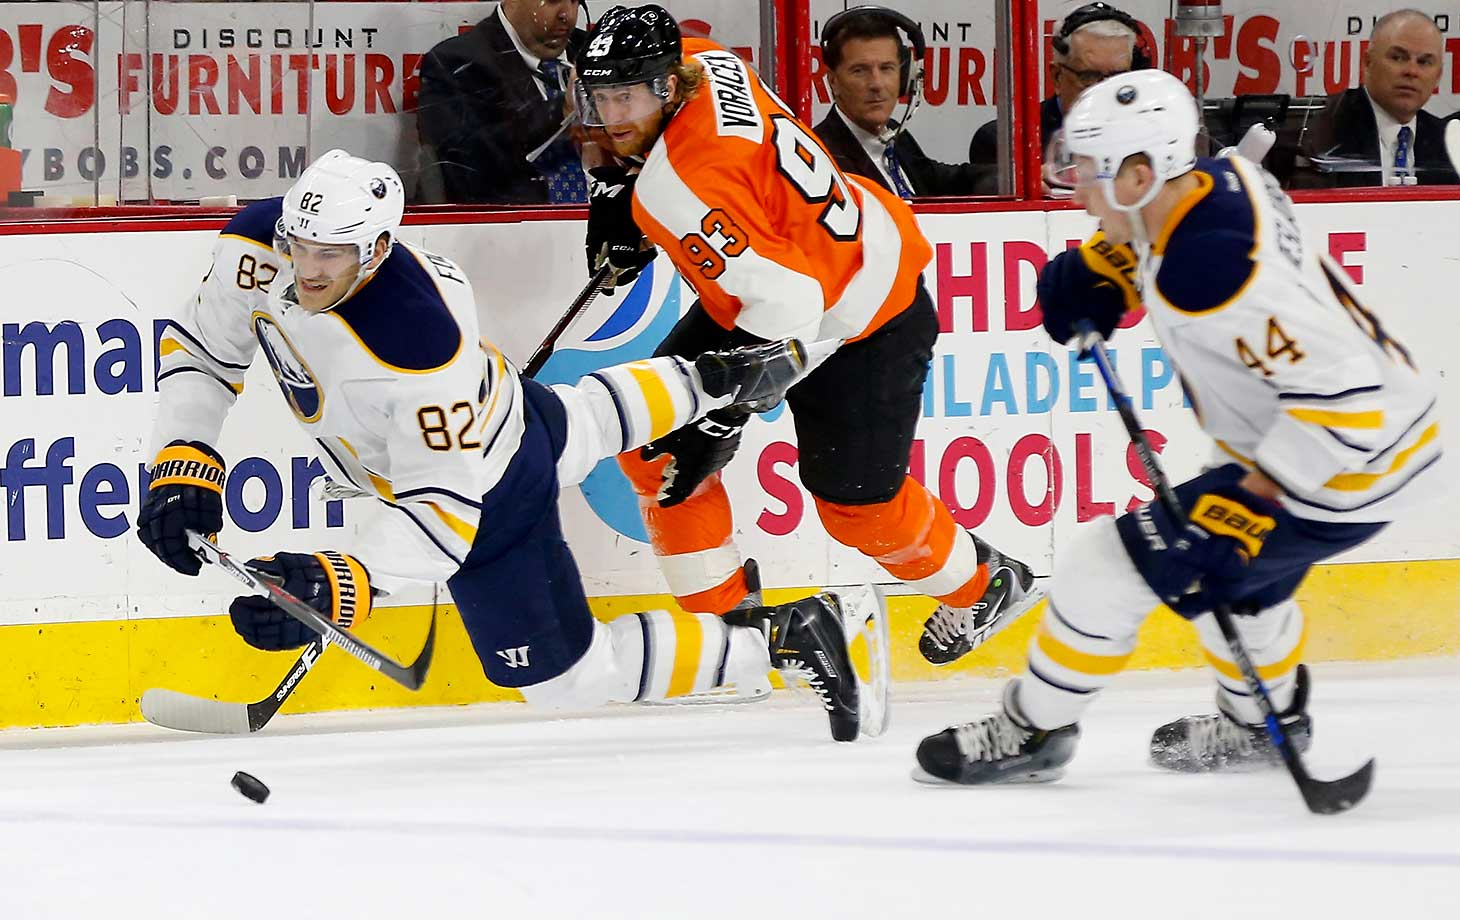 Marcus Foligno of the Buffalo Sabres is tripped up by Jakub Voracek of the Philadelphia Flyers.